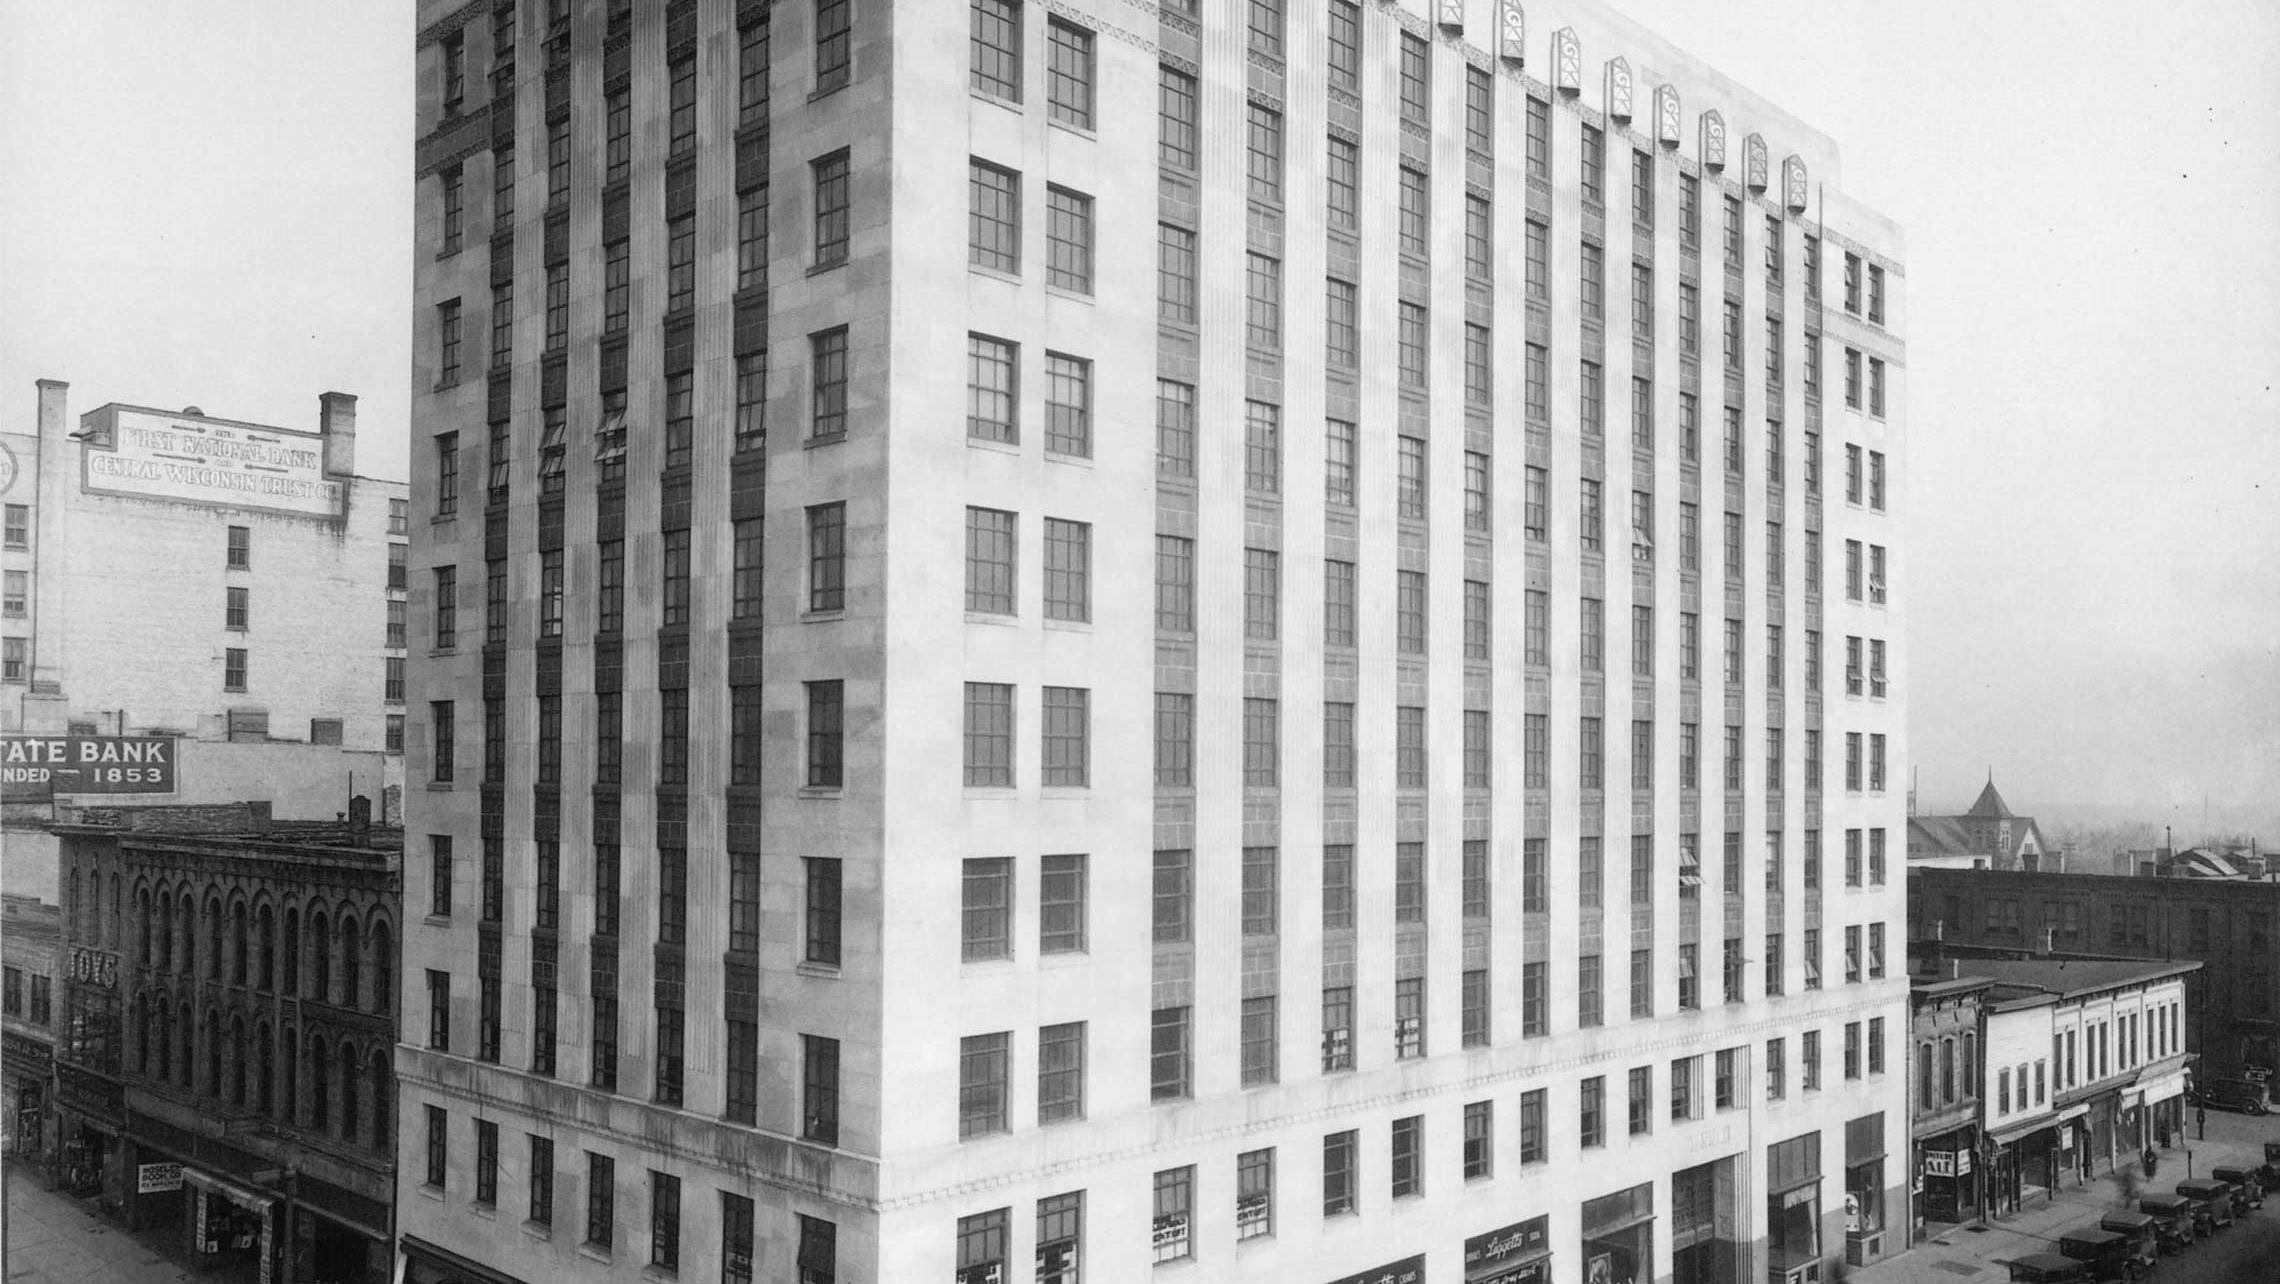 ULI Tenney Plaza - Historic Photo of the façade